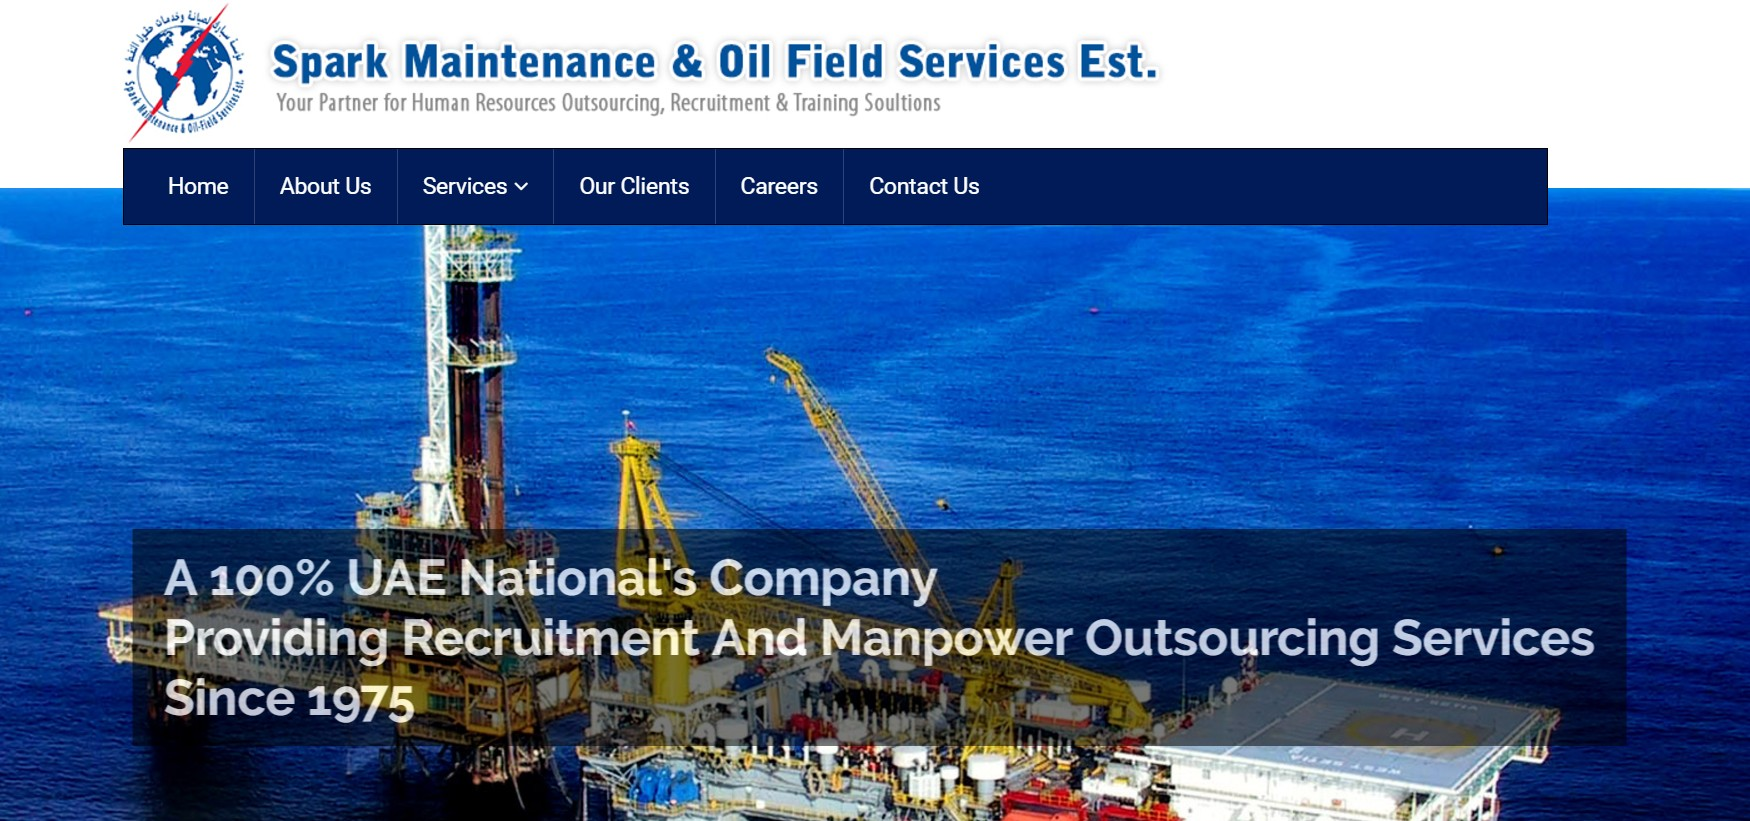 SPARK MAINTENANCE & OIL-FIELD SERVICES ESTABLISHMENT | LinkedIn